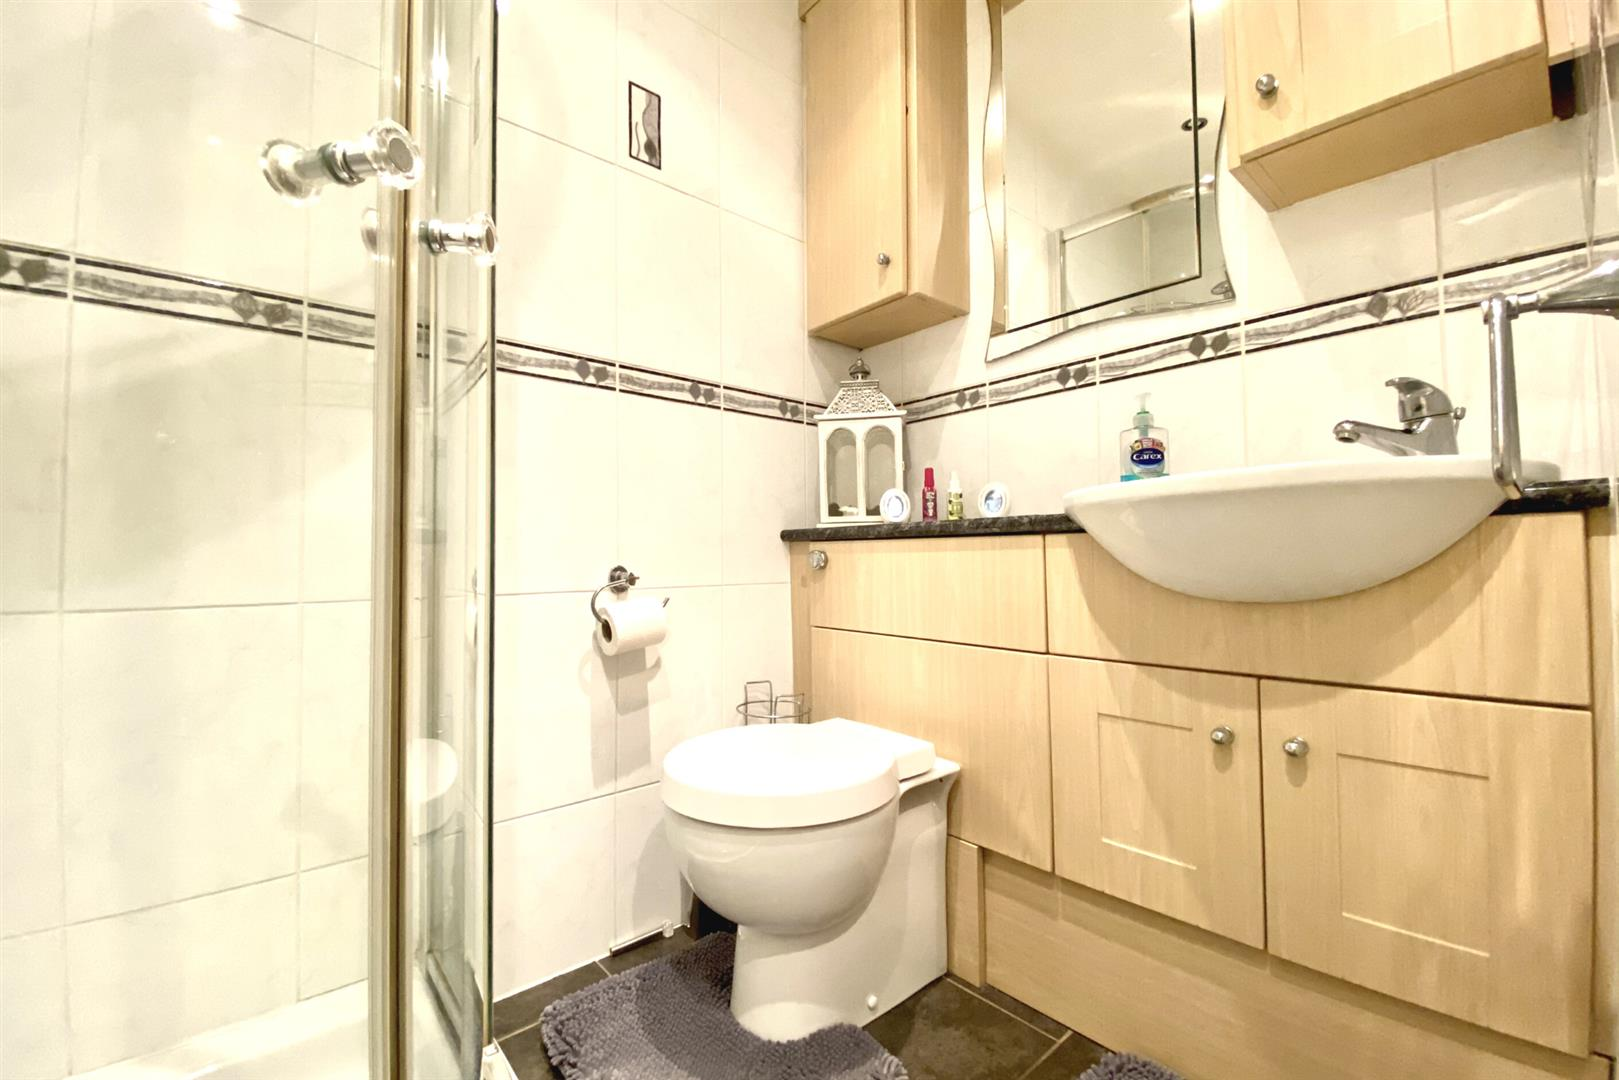 3 bed end of terrace for sale in Lower Earley  - Property Image 5